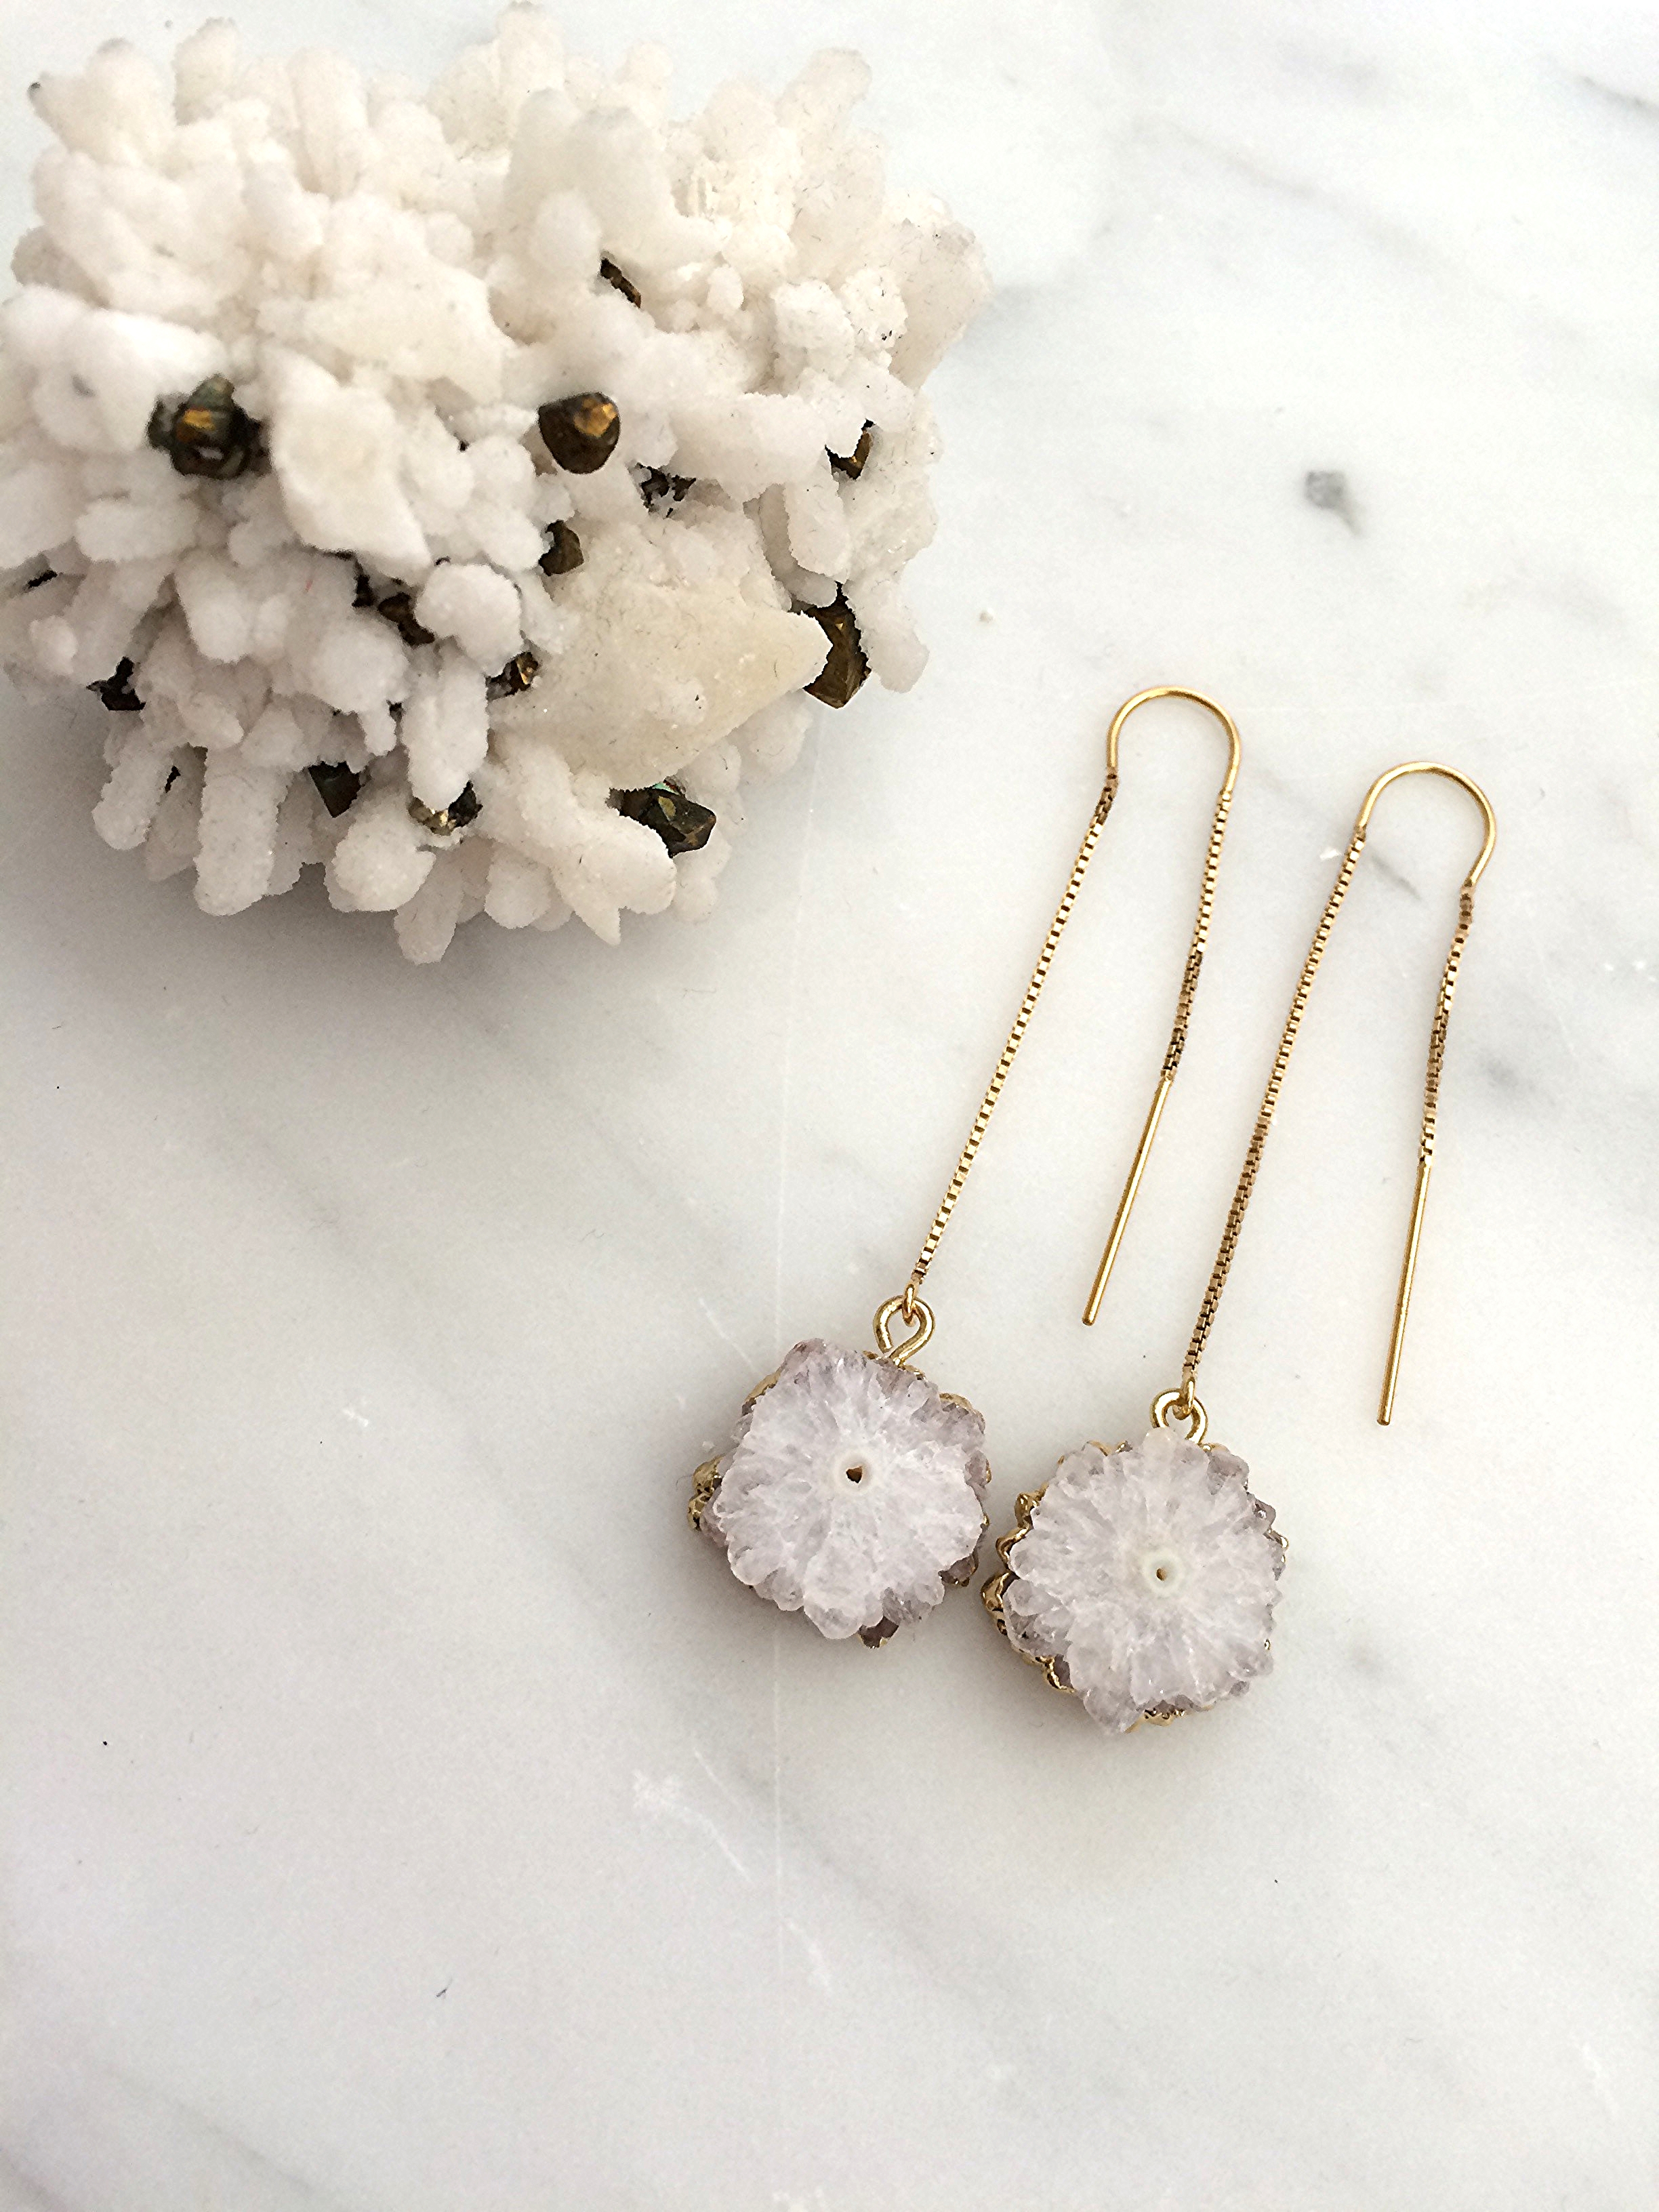 Natural Solar Quartz Flowers w/ 24k gold electroplated edging hung from 14k gold filled earring threads